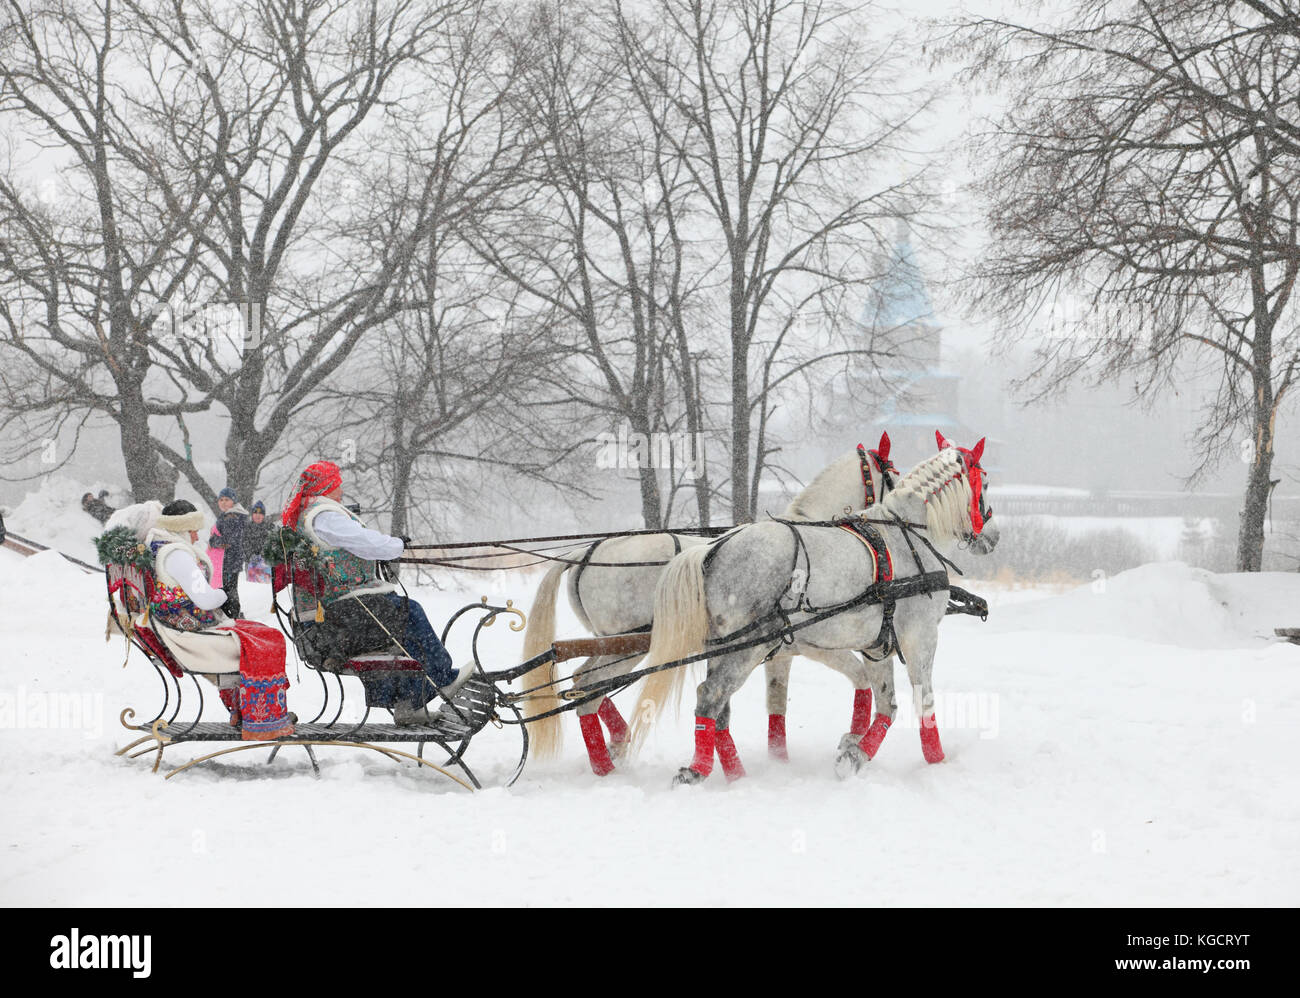 russian orlov trotter horse pulling sleigh in winter obstacle cone